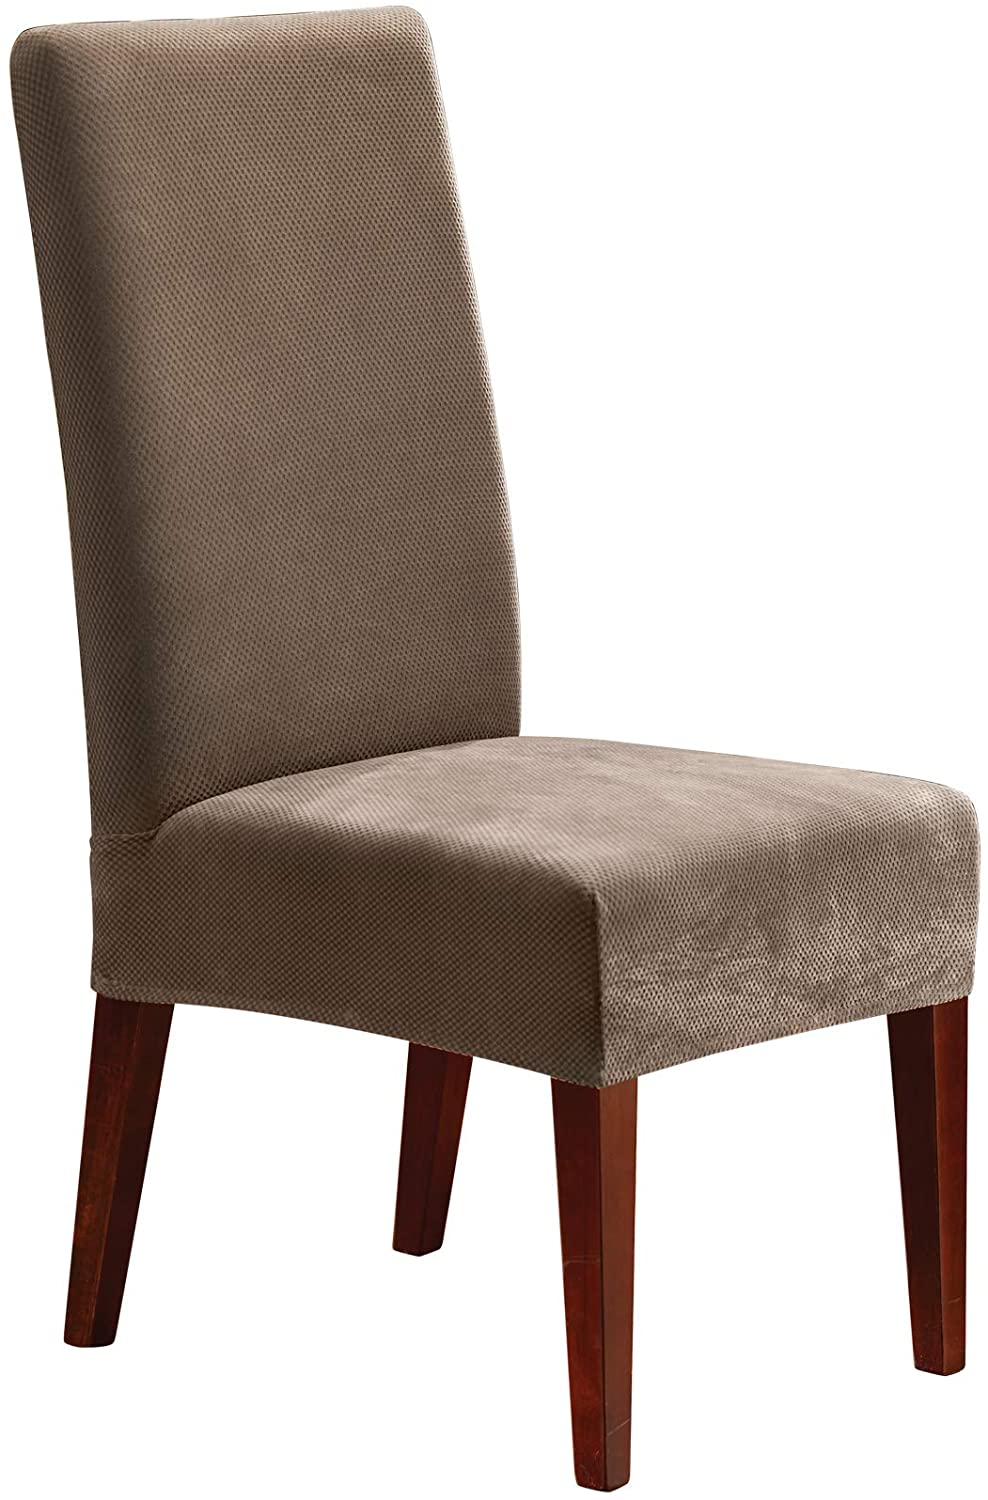 Best stretch dining chair seat covers